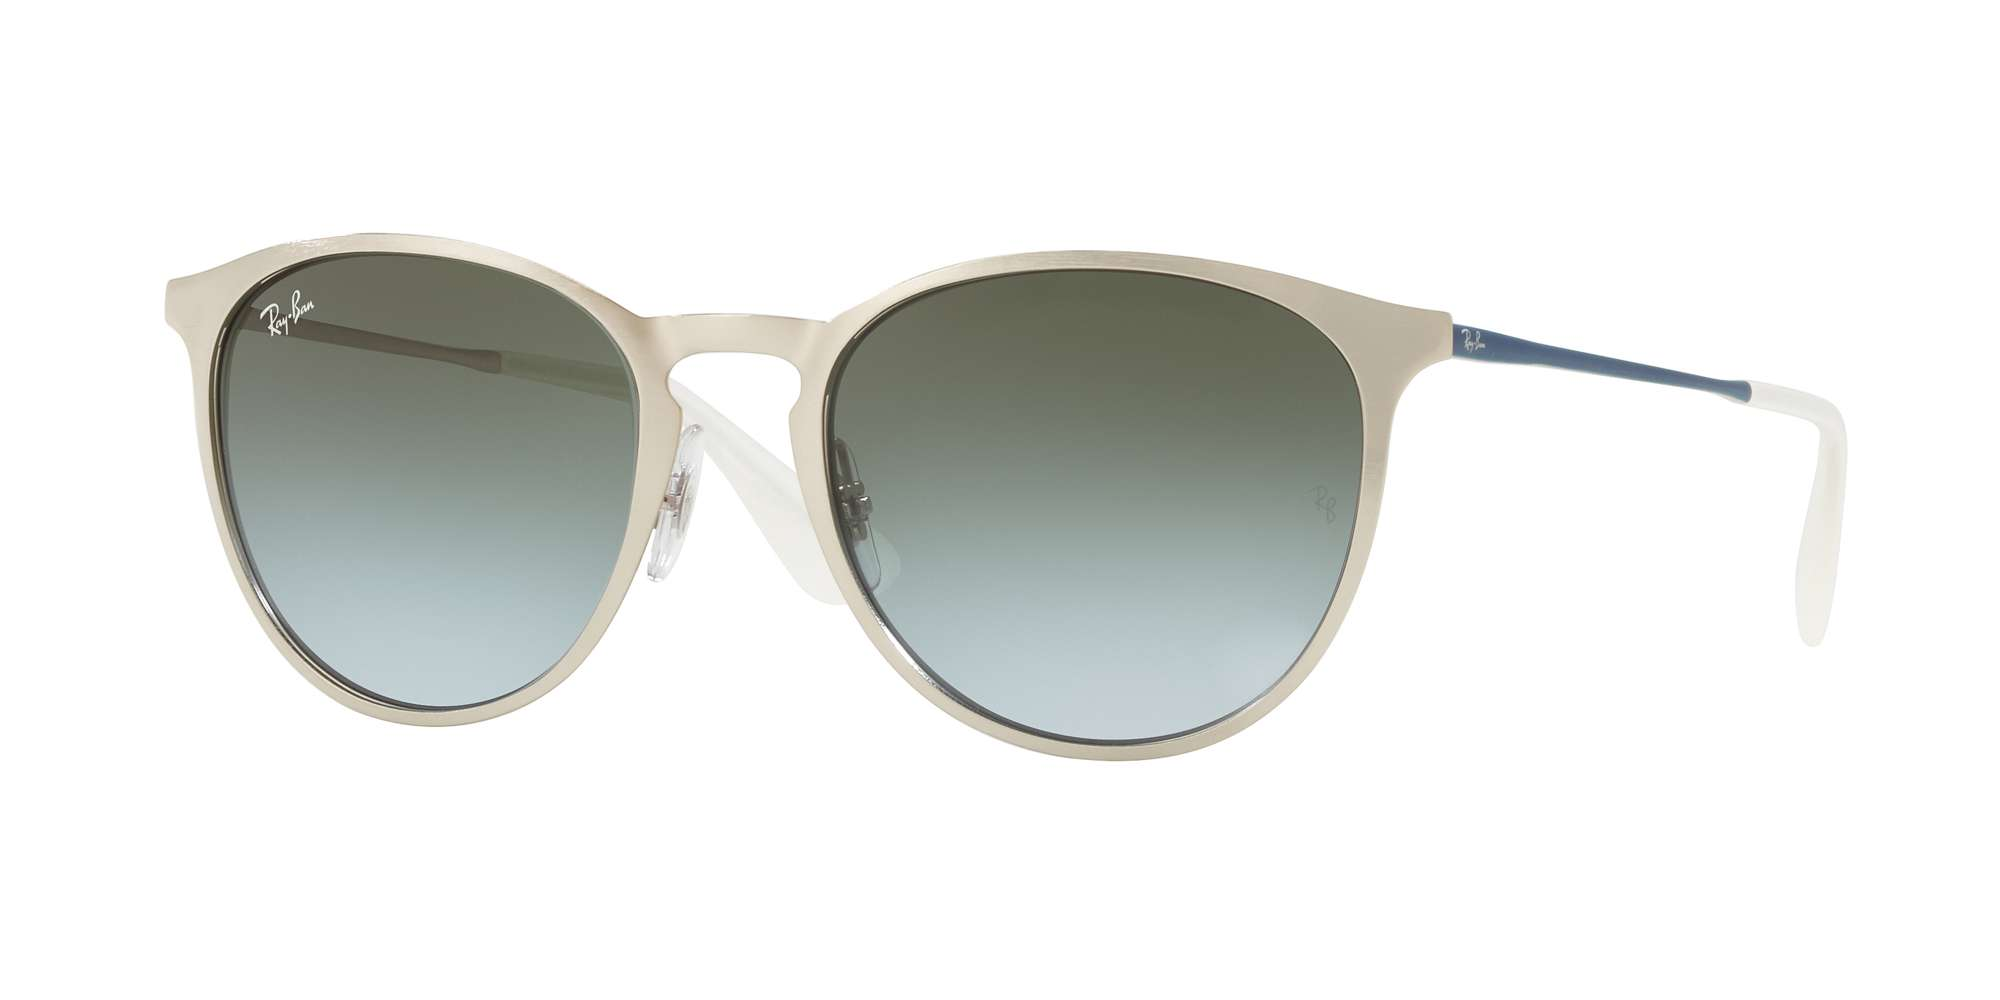 BRUSCHED SILVER / LIGHT BLUE GRADIENT GREEN lenses